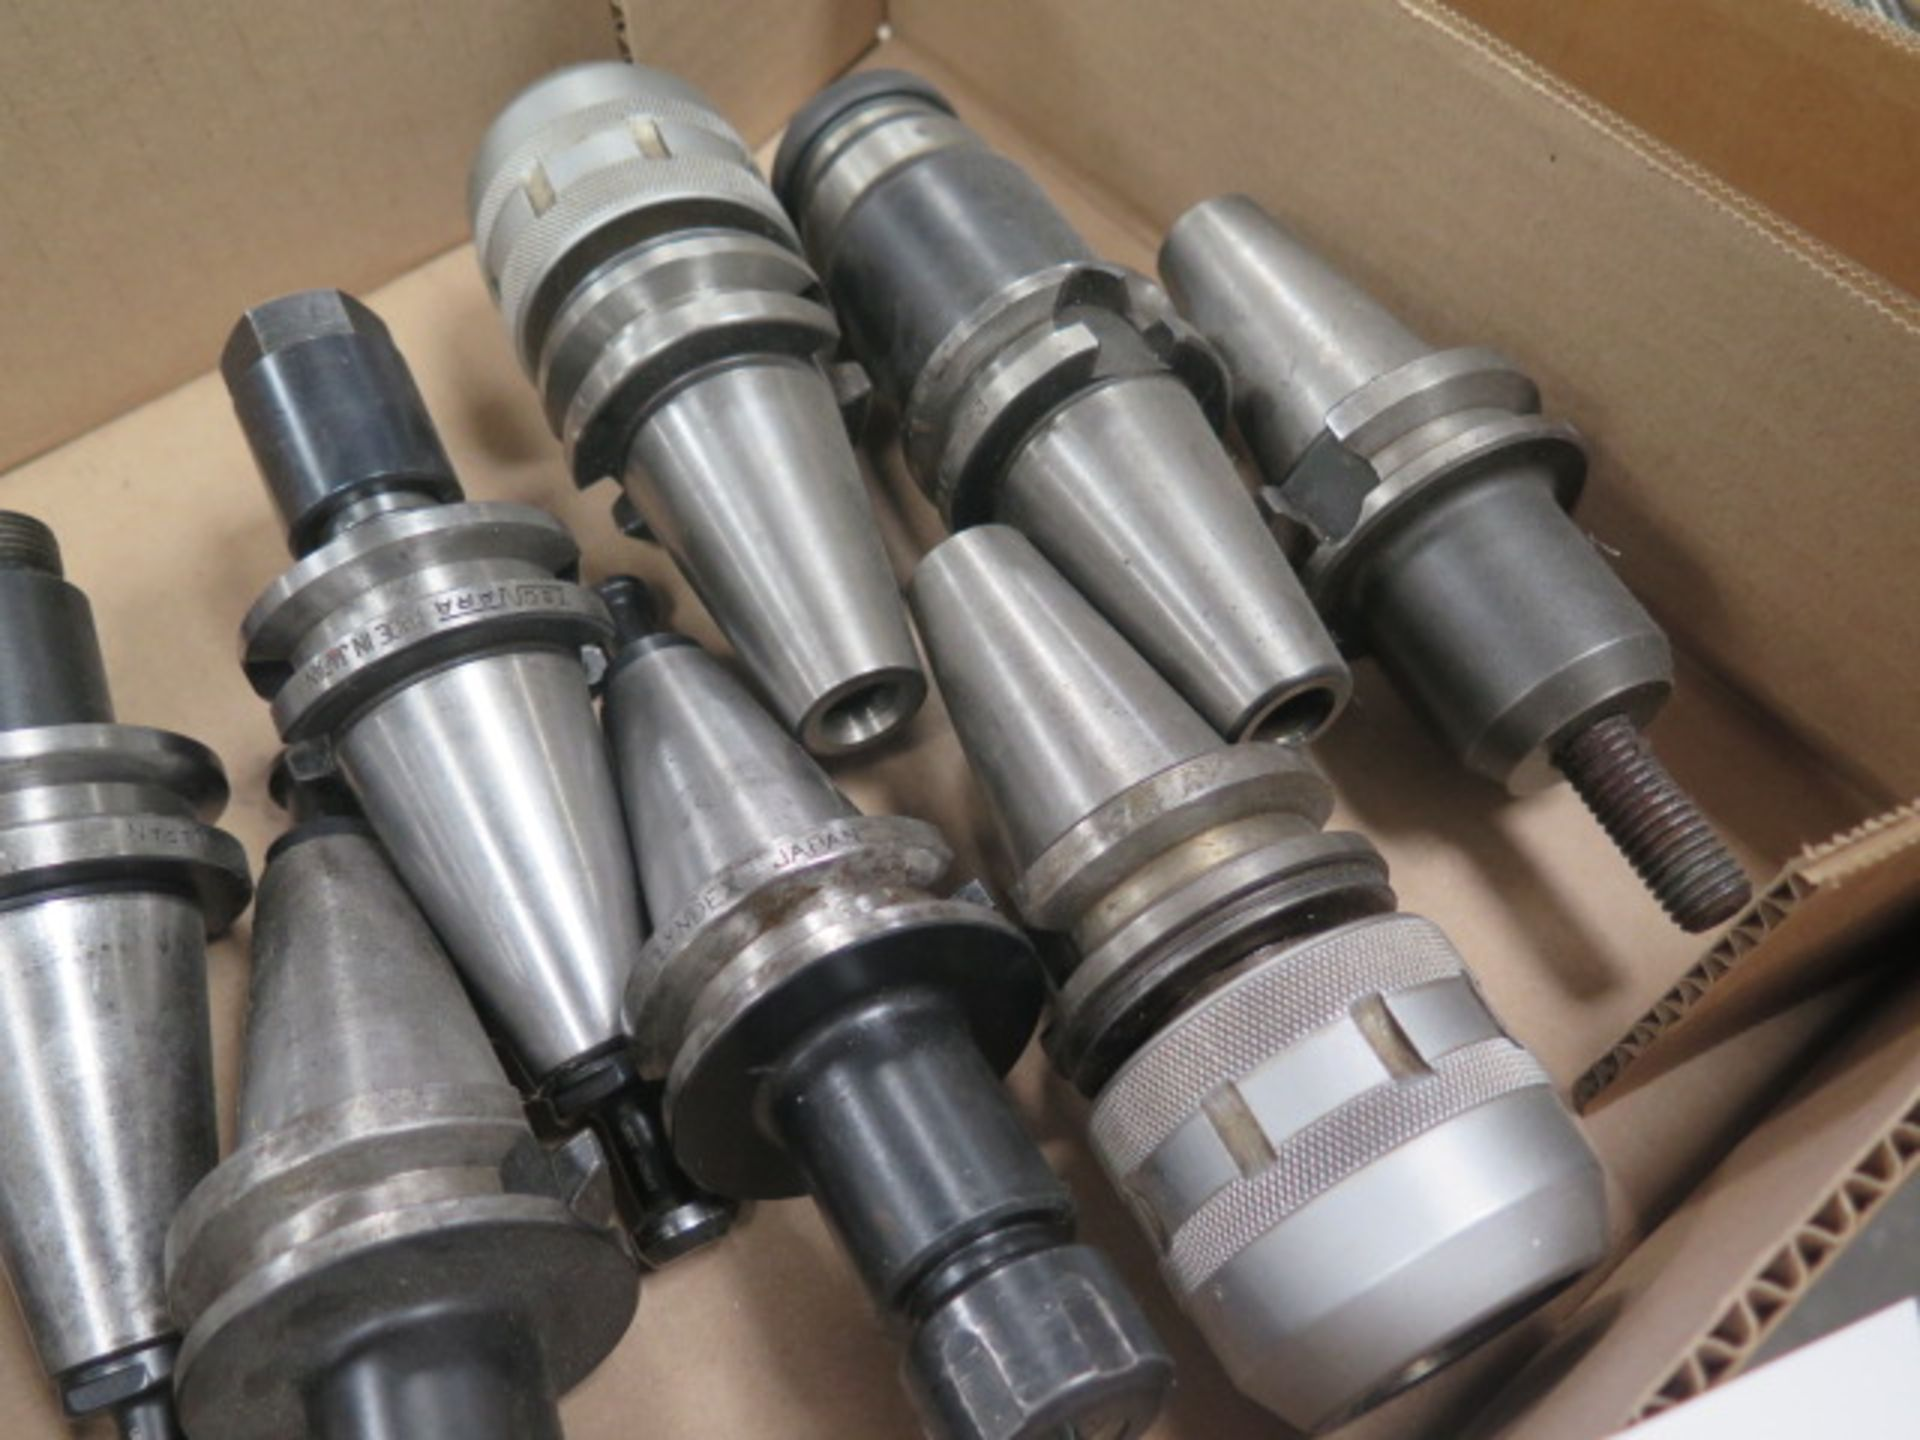 BT-35 Taper Tooling (10) (SOLD AS-IS - NO WARRANTY) - Image 4 of 4